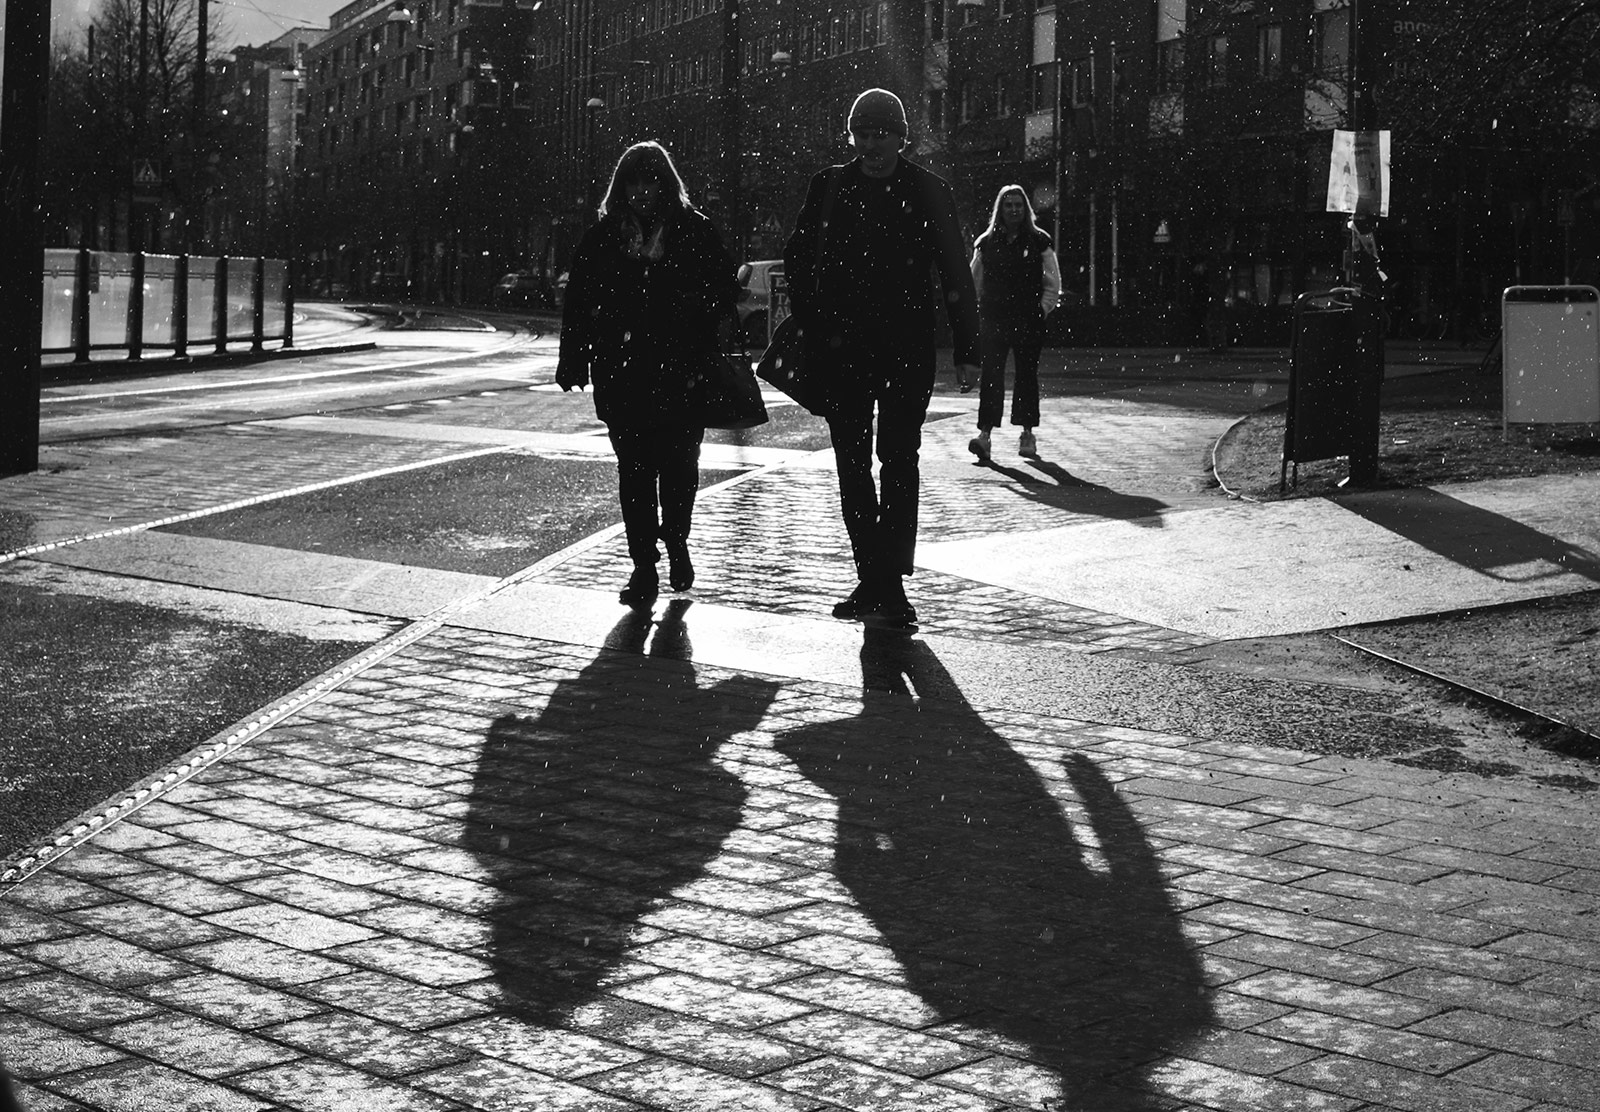 People walking in snow and sun